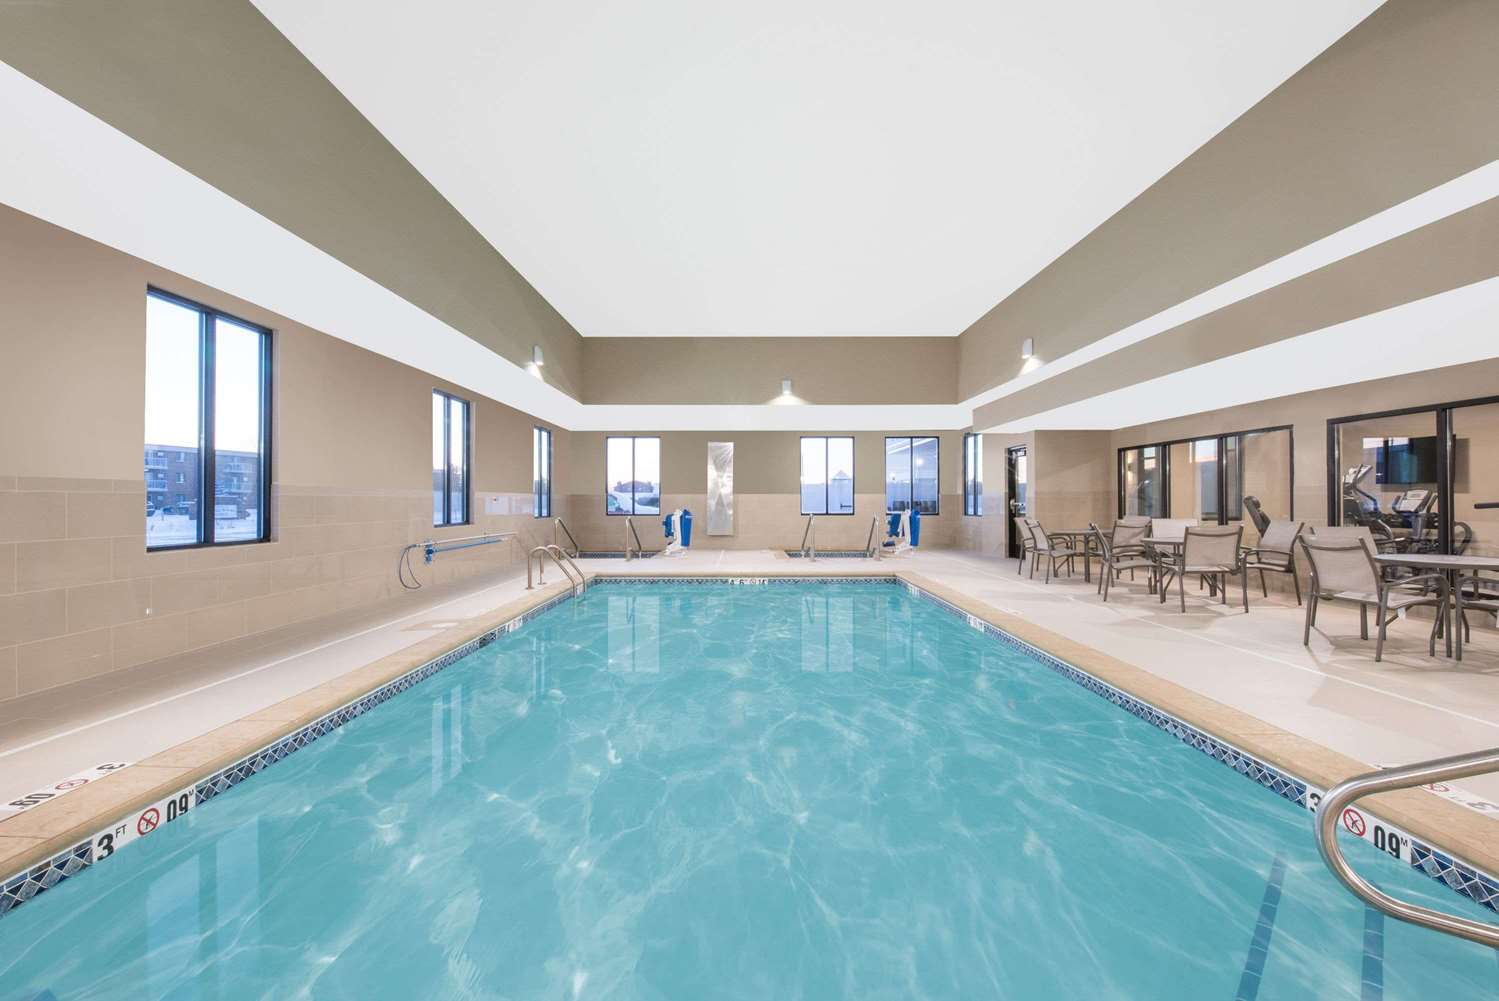 Pool - Hawthorn Suites by Wyndham Fargo